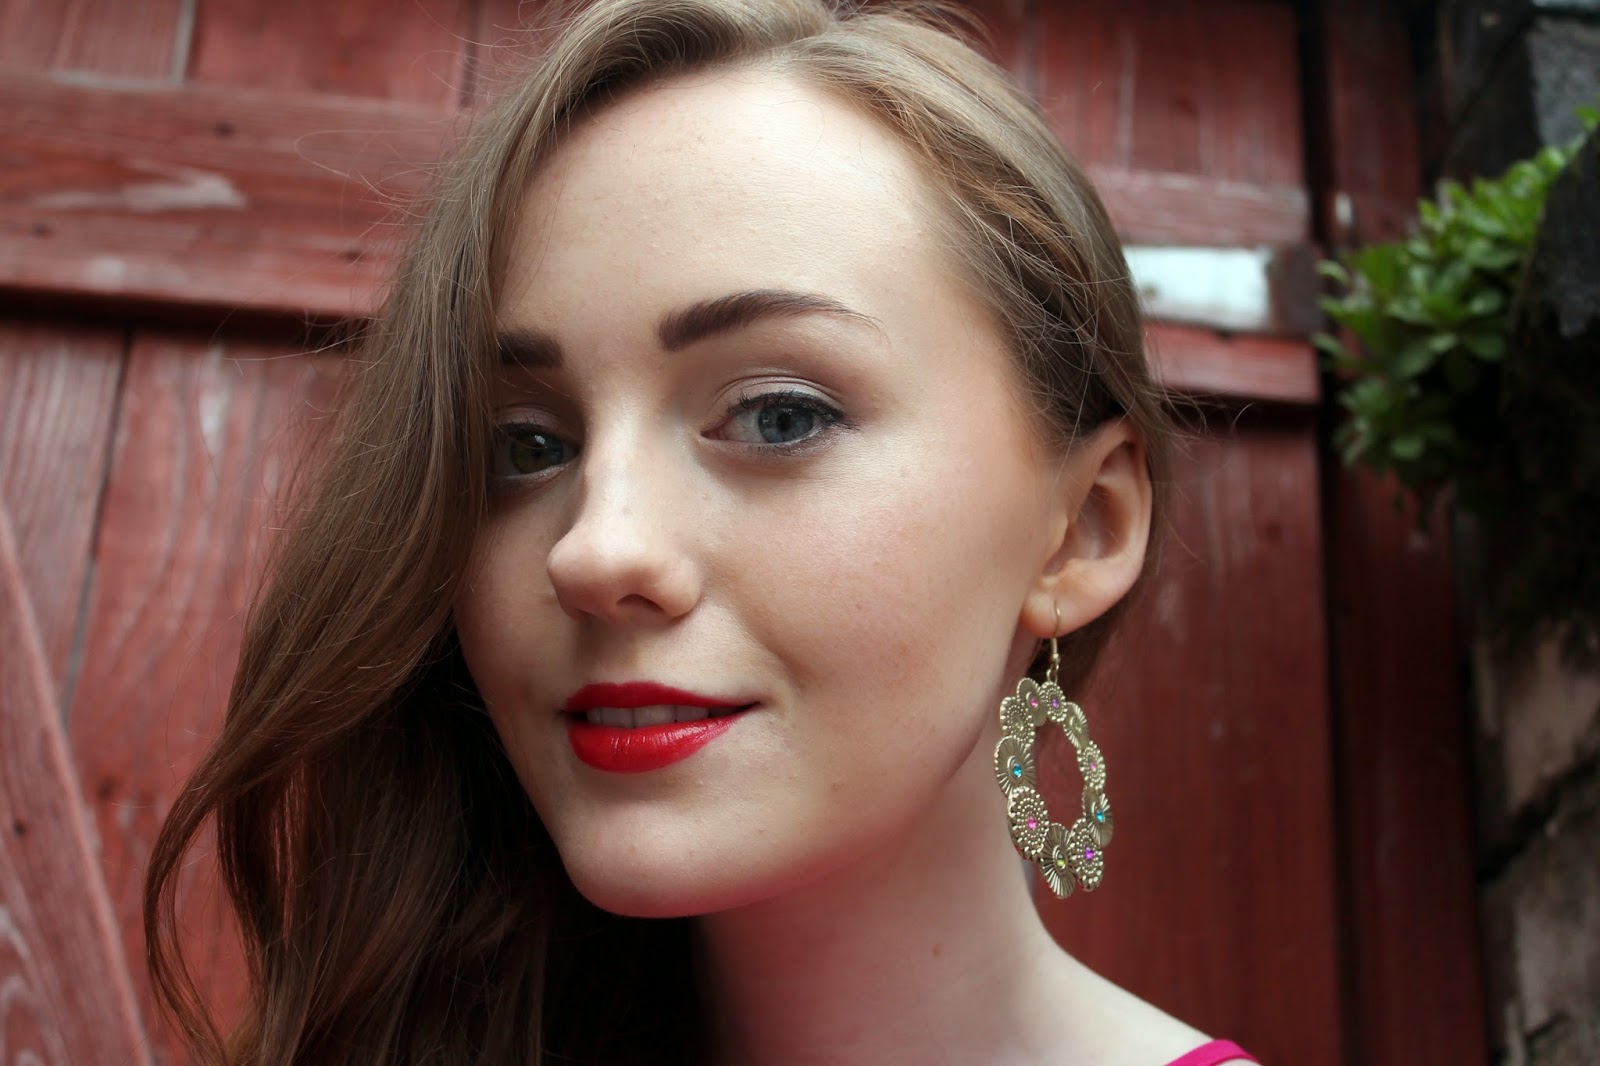 uk fashion and beauty awards 2014 held in liverpool blogger close up rimmel lipstick new look gold hoop earrings